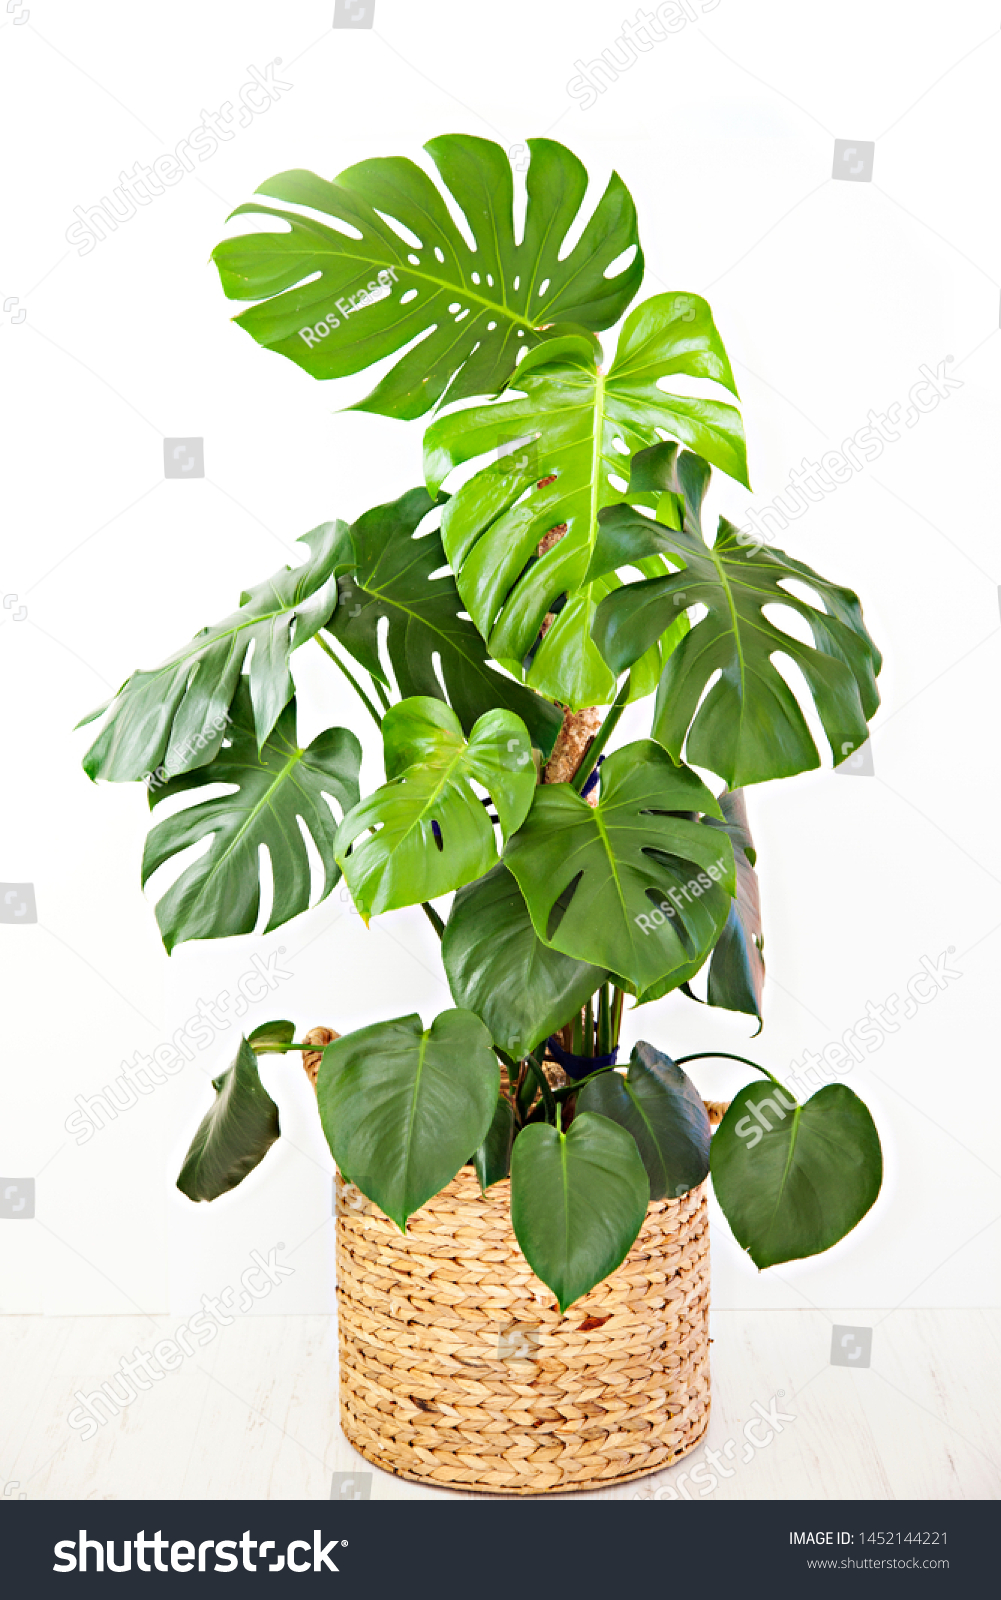 A photo of a large, mature, Monstera deliciosa pot plant, also known as the Swiss Cheese Plant, with large glossy, green leaves, potted in a round basket, isolated on a white background. #1452144221